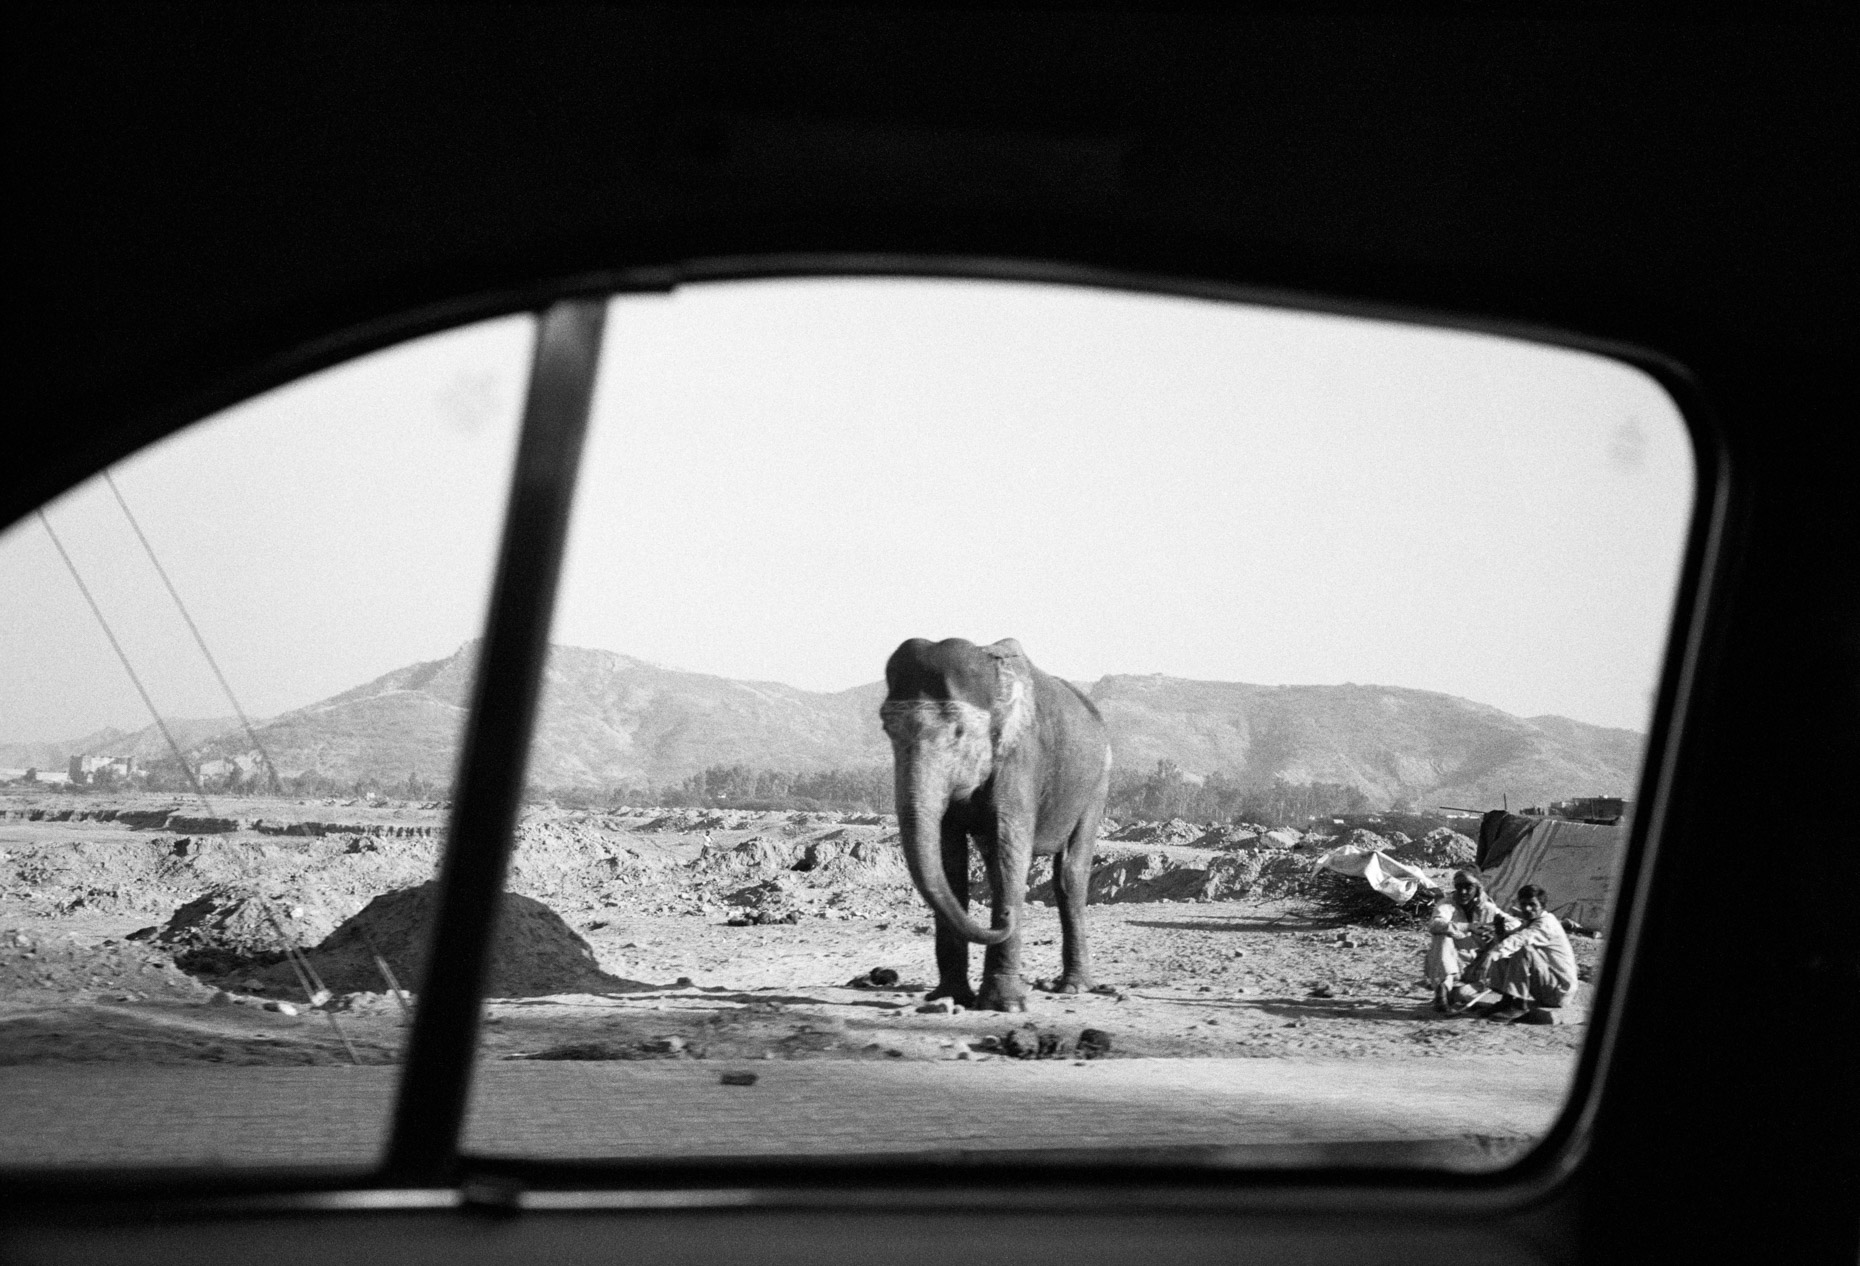 Elephant on Amber Road, Jaipur